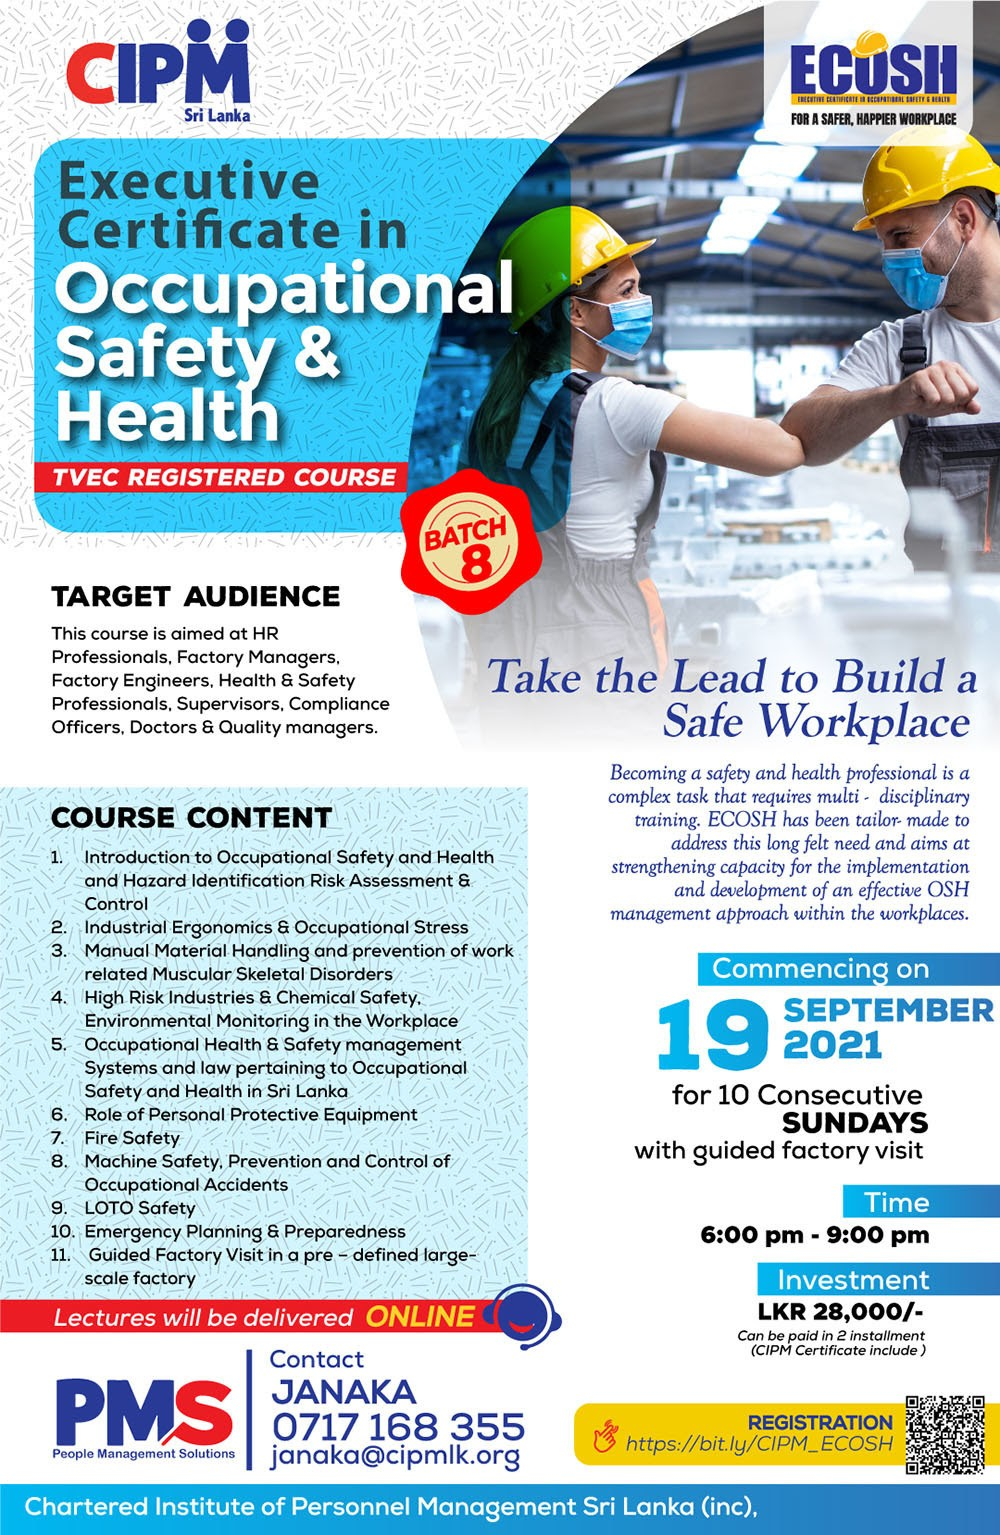 Take the lead to build a safe workplace